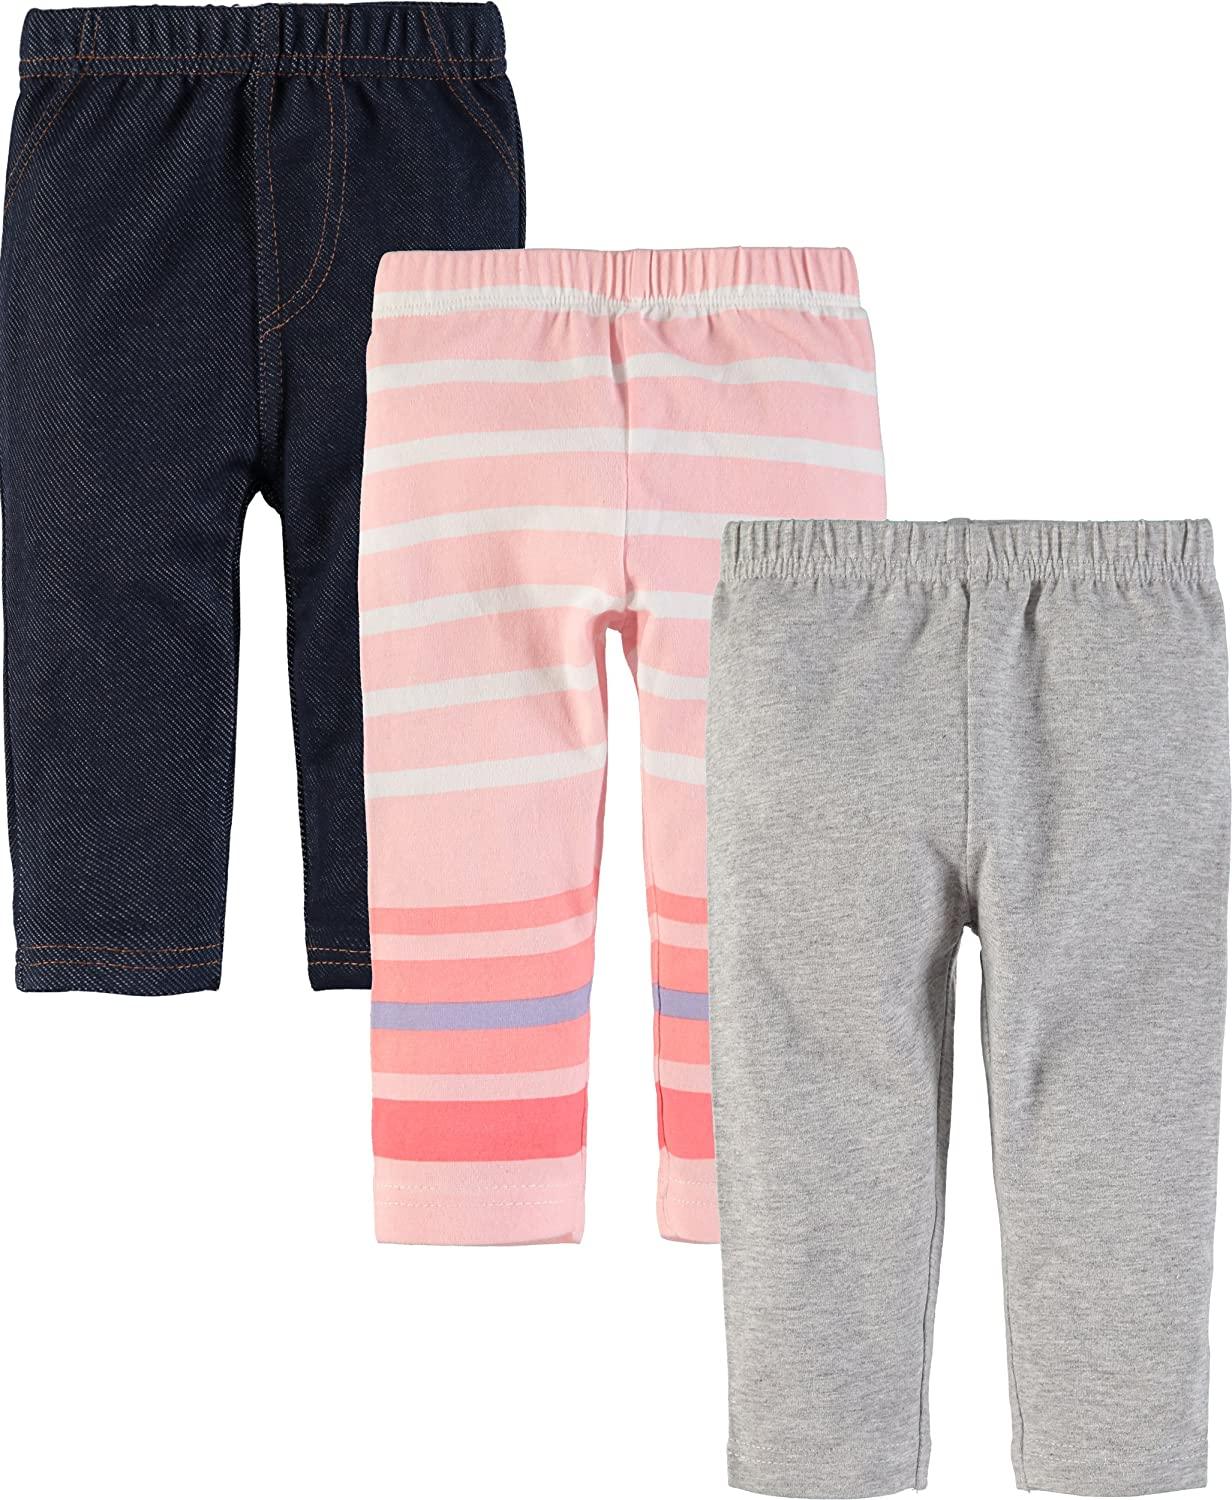 Wan-A-Beez Baby Boys and Baby Girls 3 Pack Pants